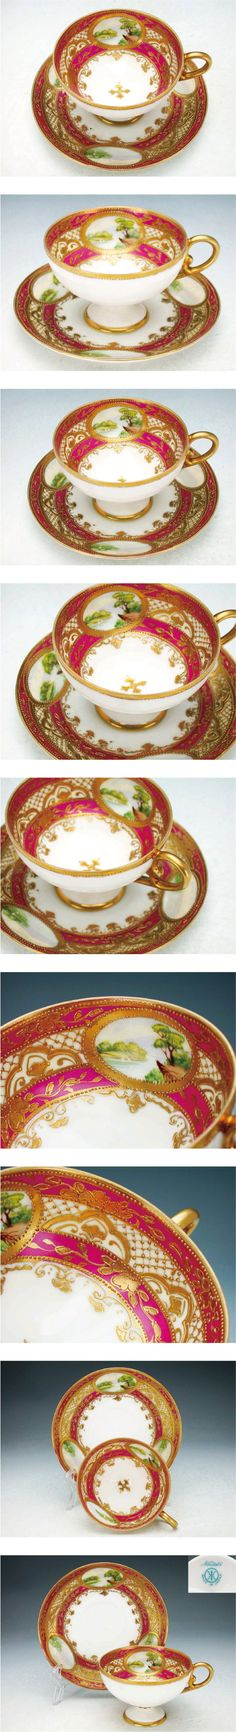 Old Noritake pedestal cup and saucer  1908